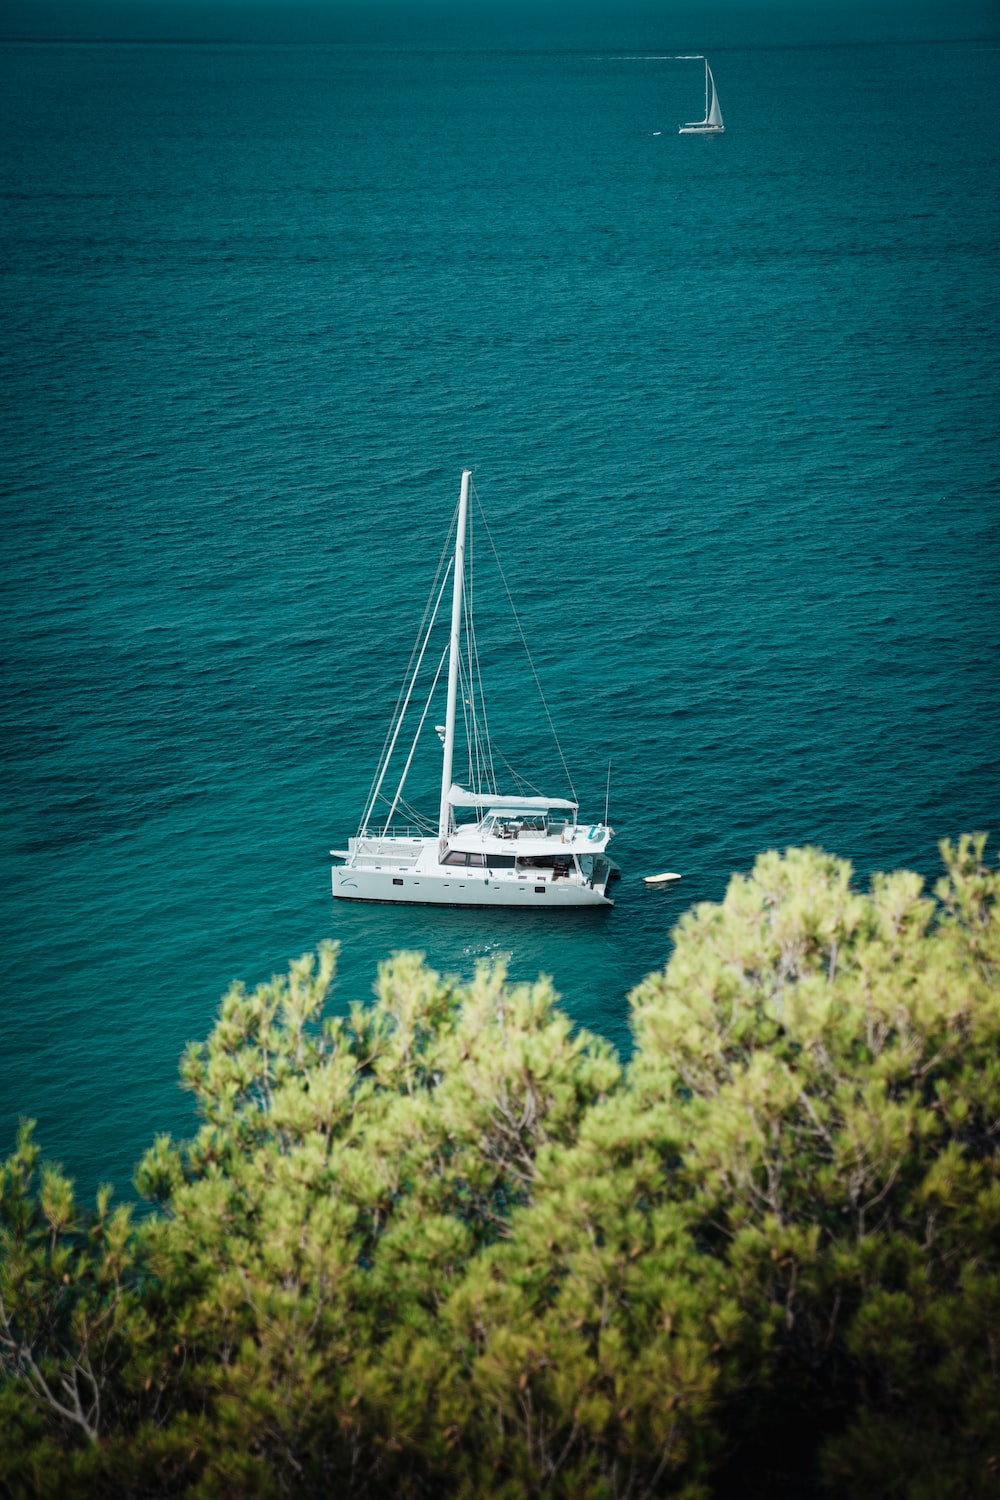 shallow focus photo of white boat on body of water